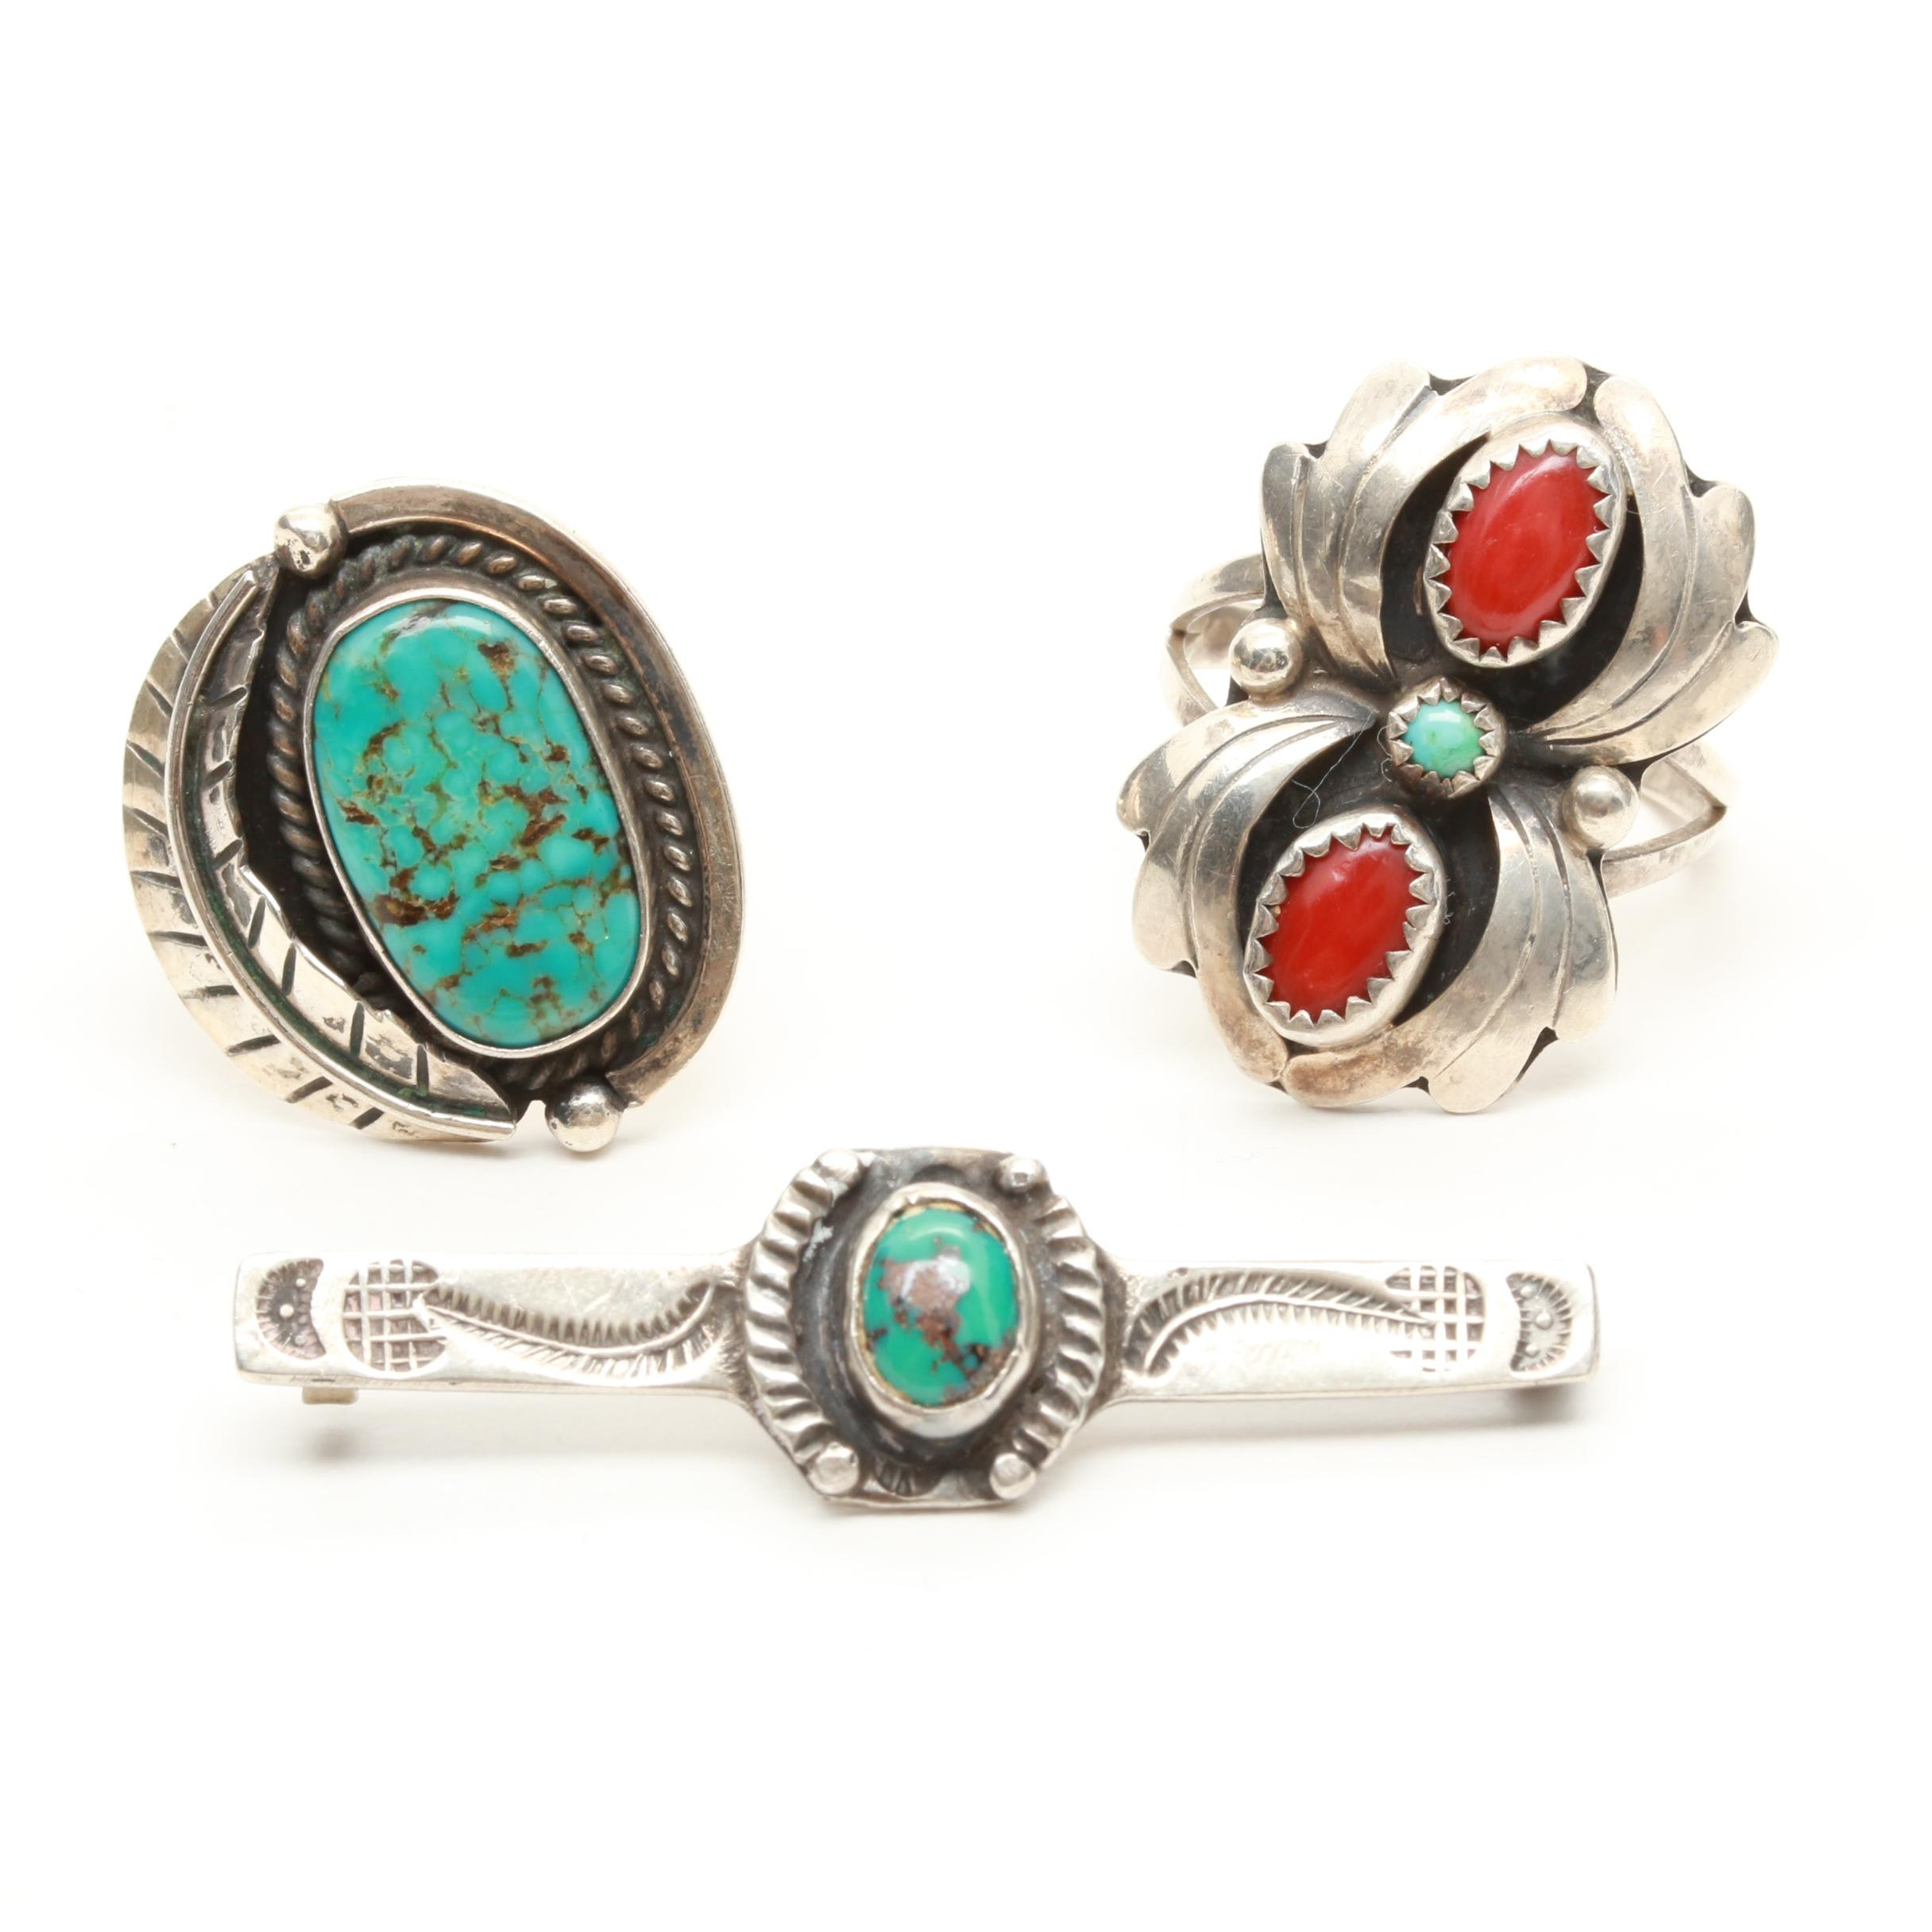 Southwestern Style Sterling Silver Turquoise and Coral Brooch and Rings